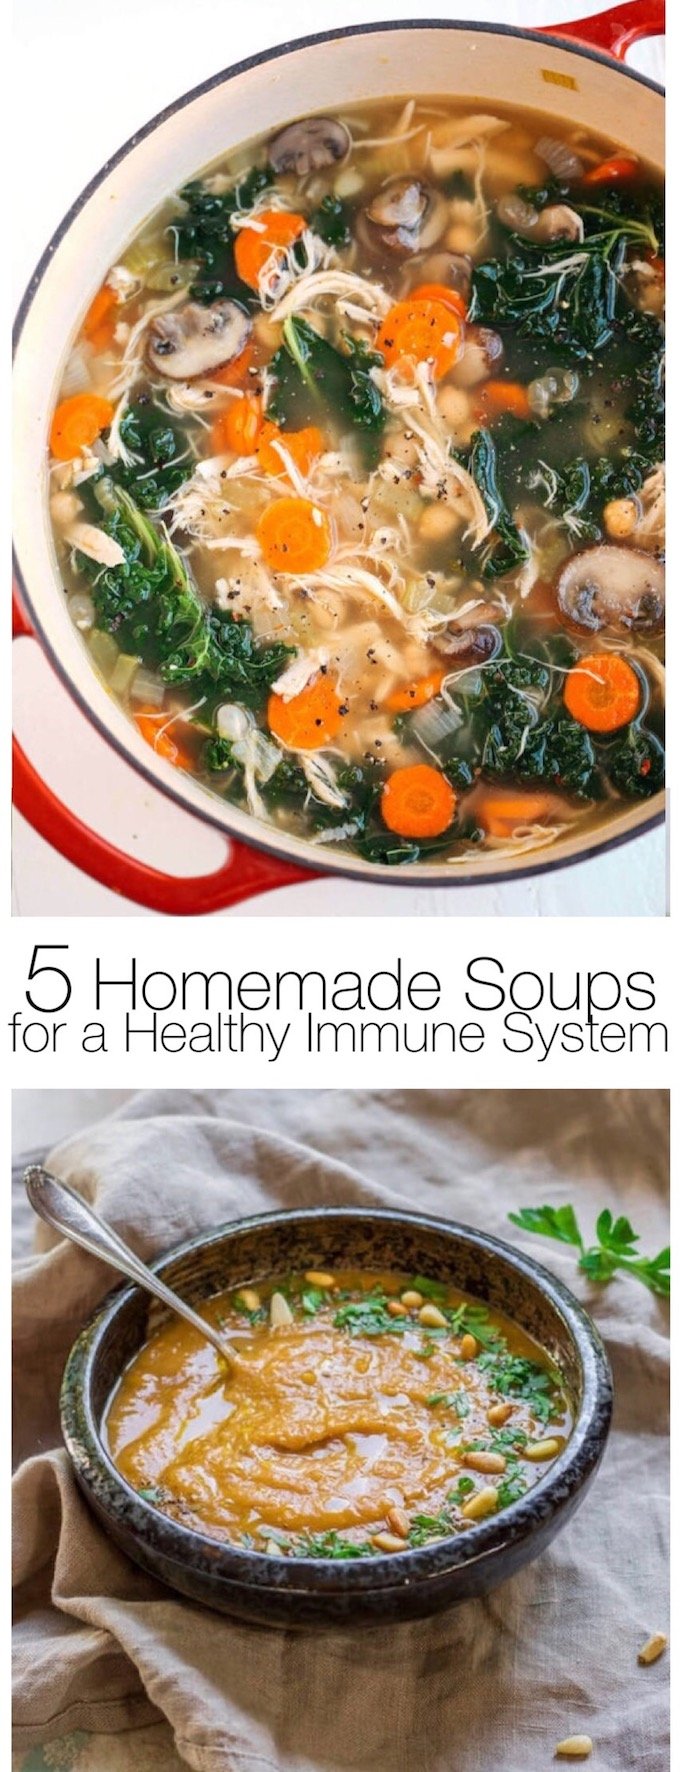 The 5 delicious homemade soups featured here include the best ingredients to fight the flu and encourage a healthy immune system! || Design Dazzle #healthysouprecipes #immuneboostingrecipes #healthyrecipes